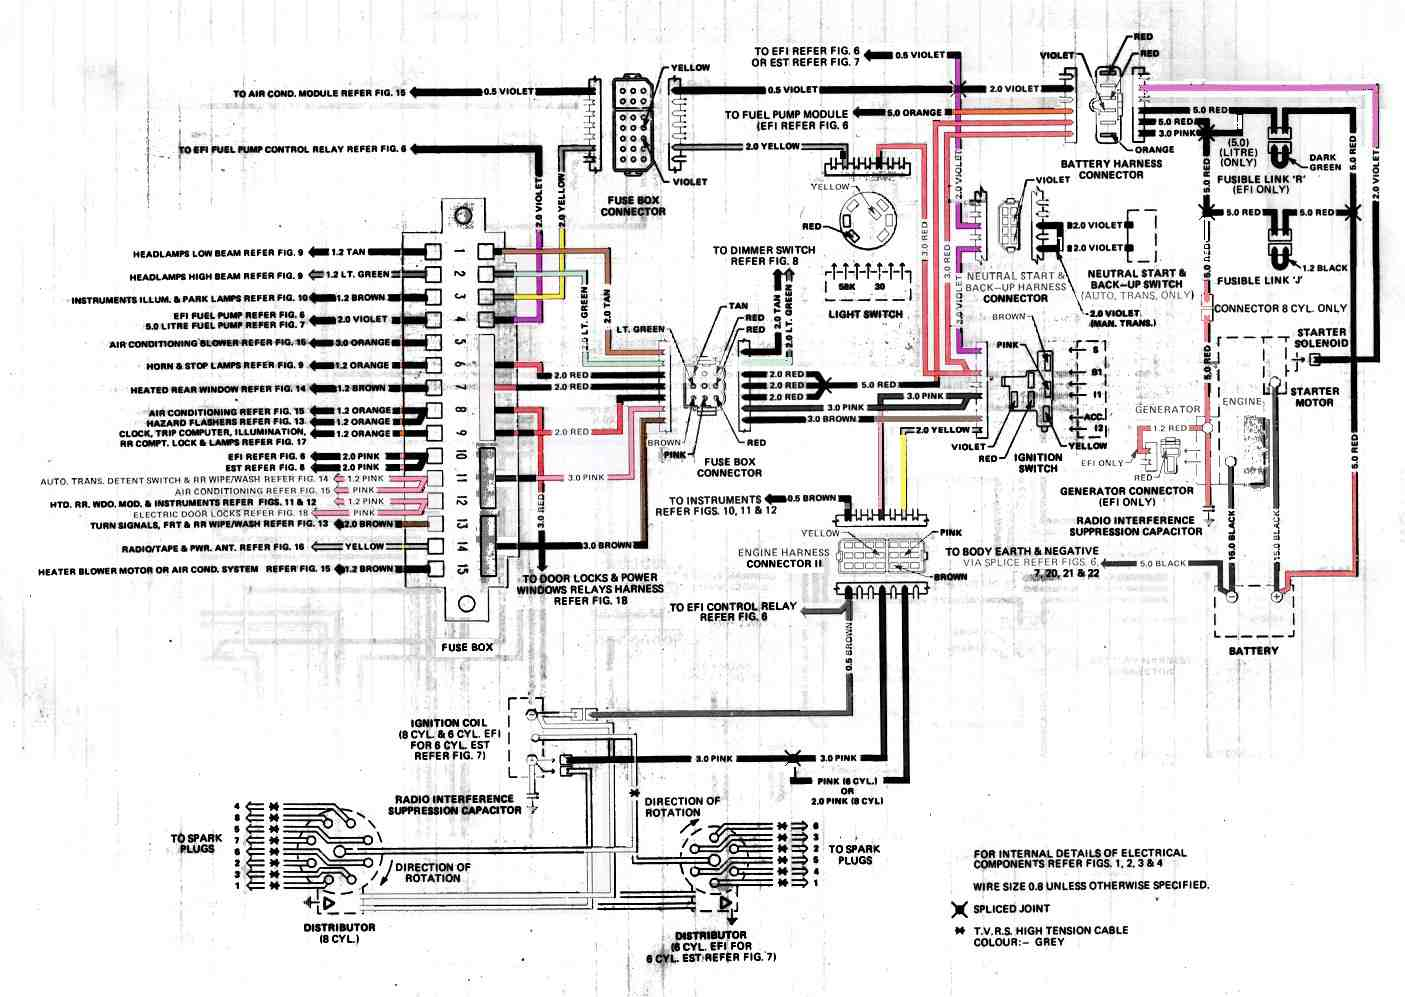 Holden car manuals wiring diagrams pdf fault codes download asfbconference2016 Image collections